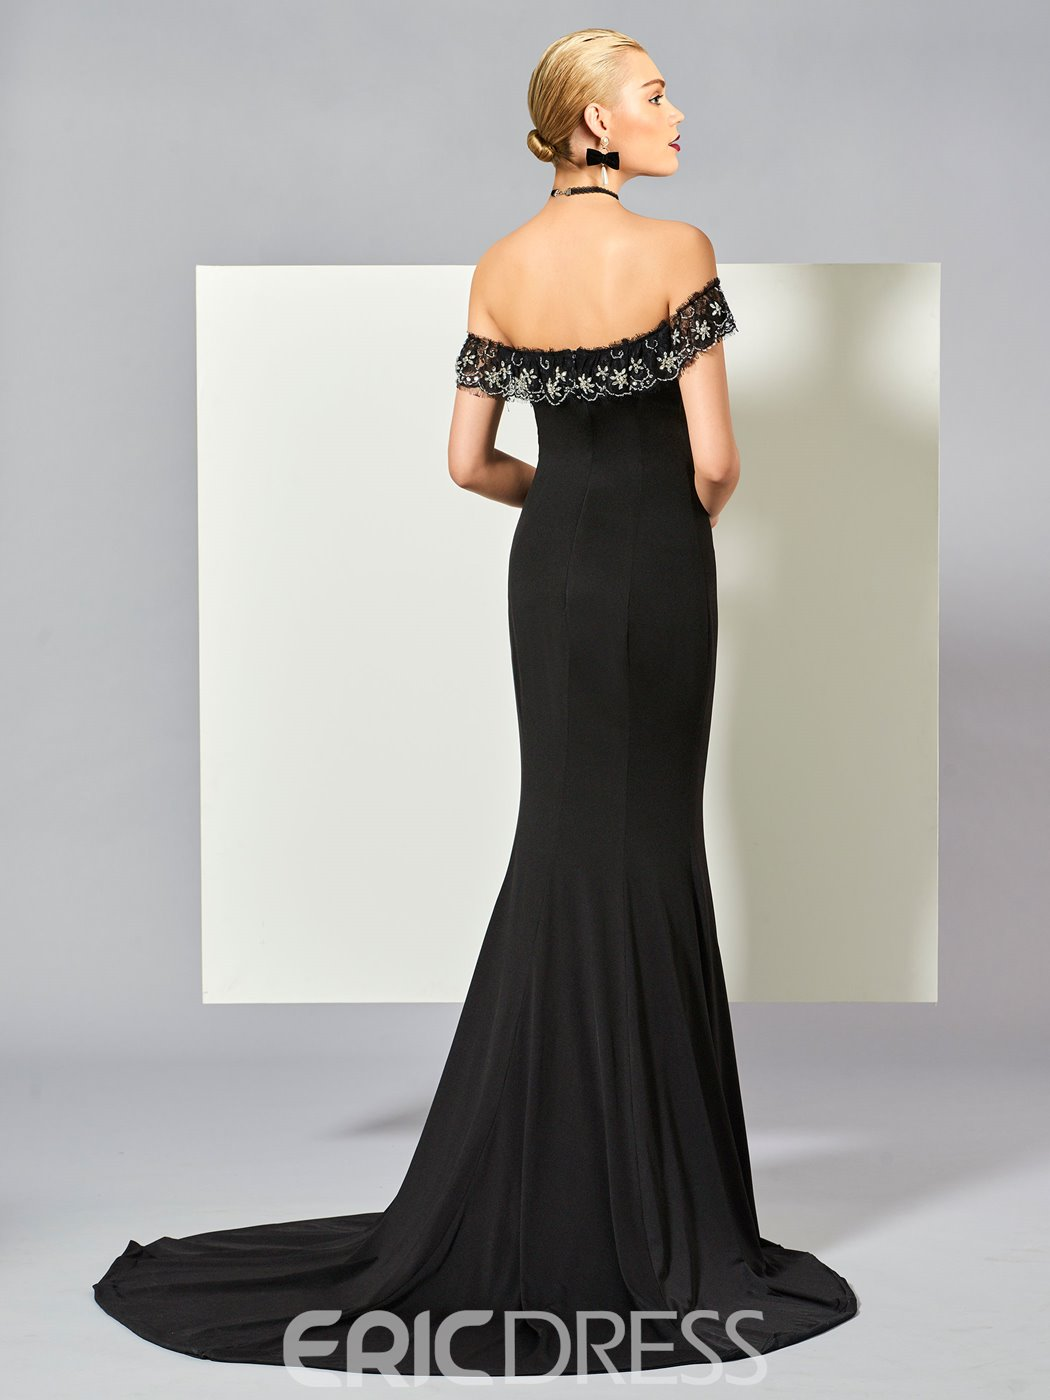 Ericdress Off The Shoulder Beaded Mermaid Evening Dress With Court Train